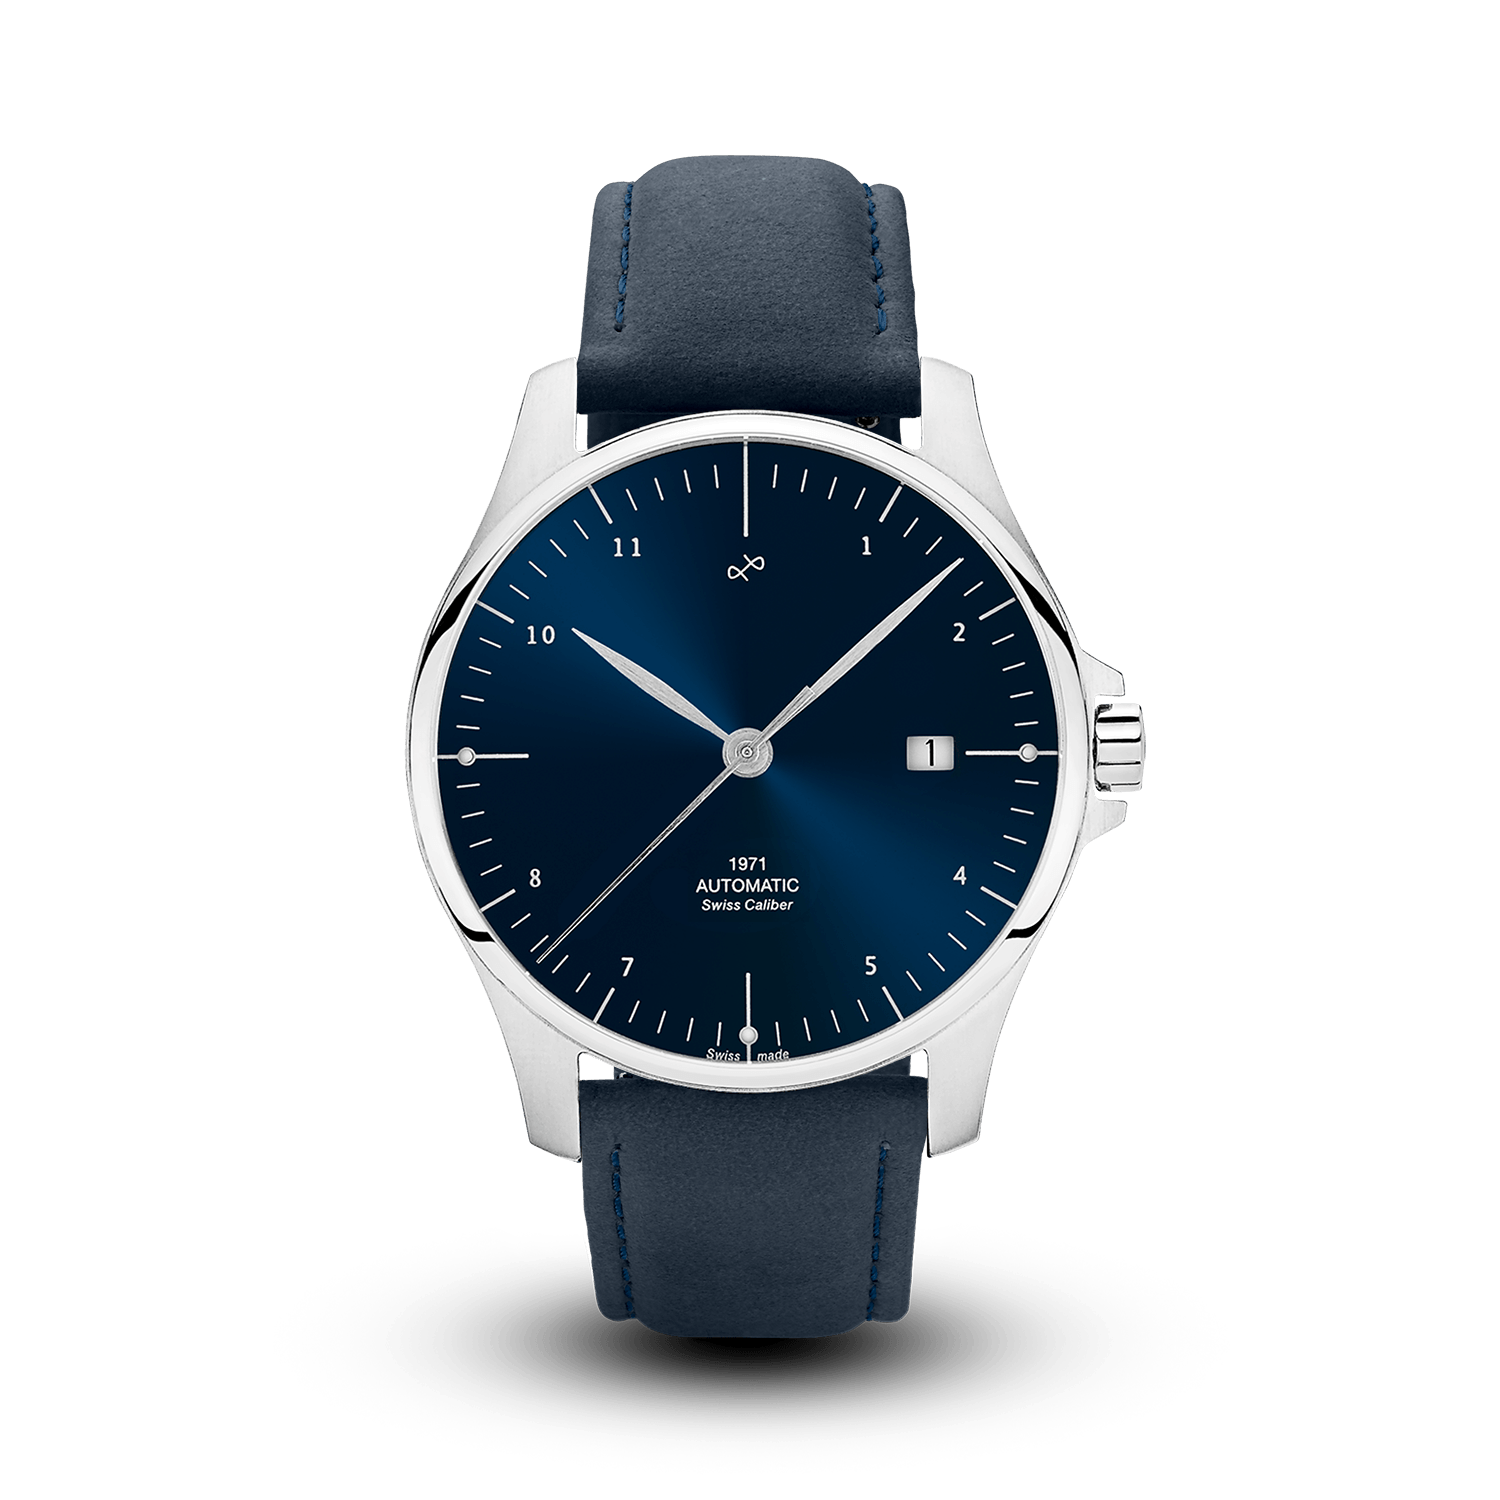 1971 Automatic, Steel / Night Blue - Swiss Made